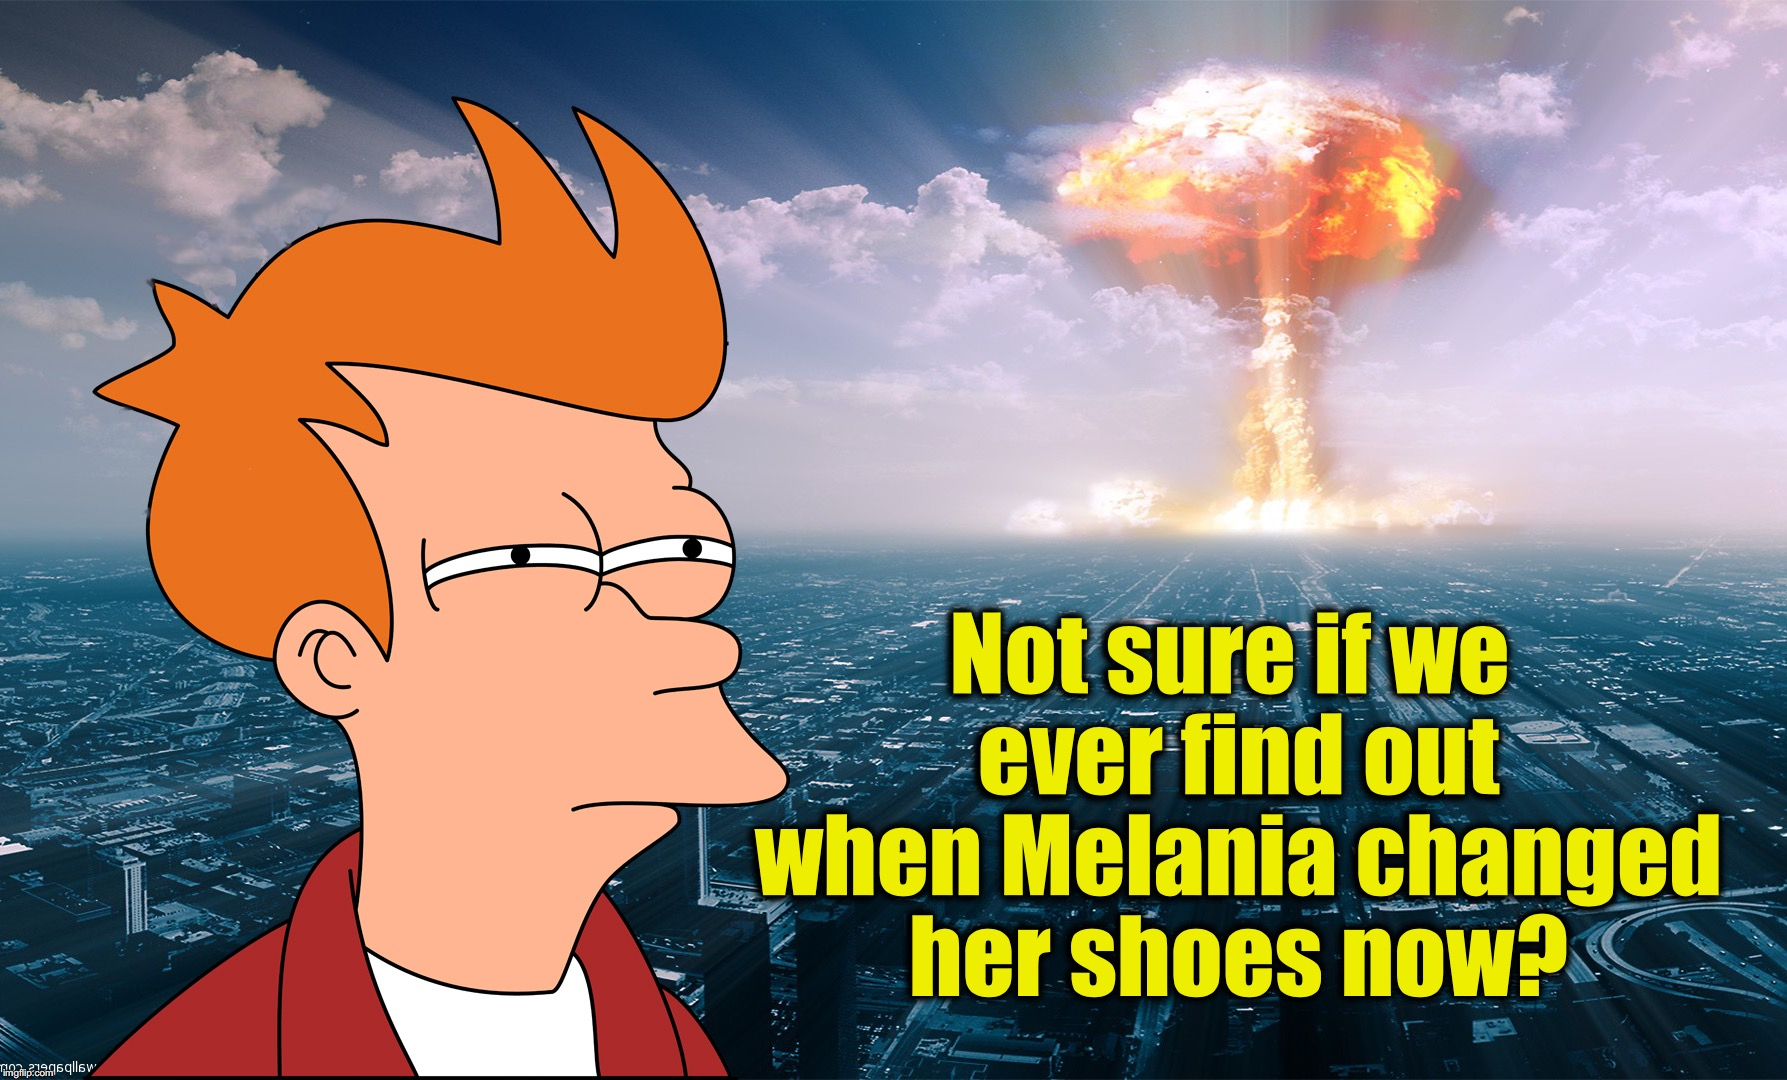 Not sure if we ever find out when Melania changed her shoes now? | image tagged in fry what if nuclear bomb | made w/ Imgflip meme maker